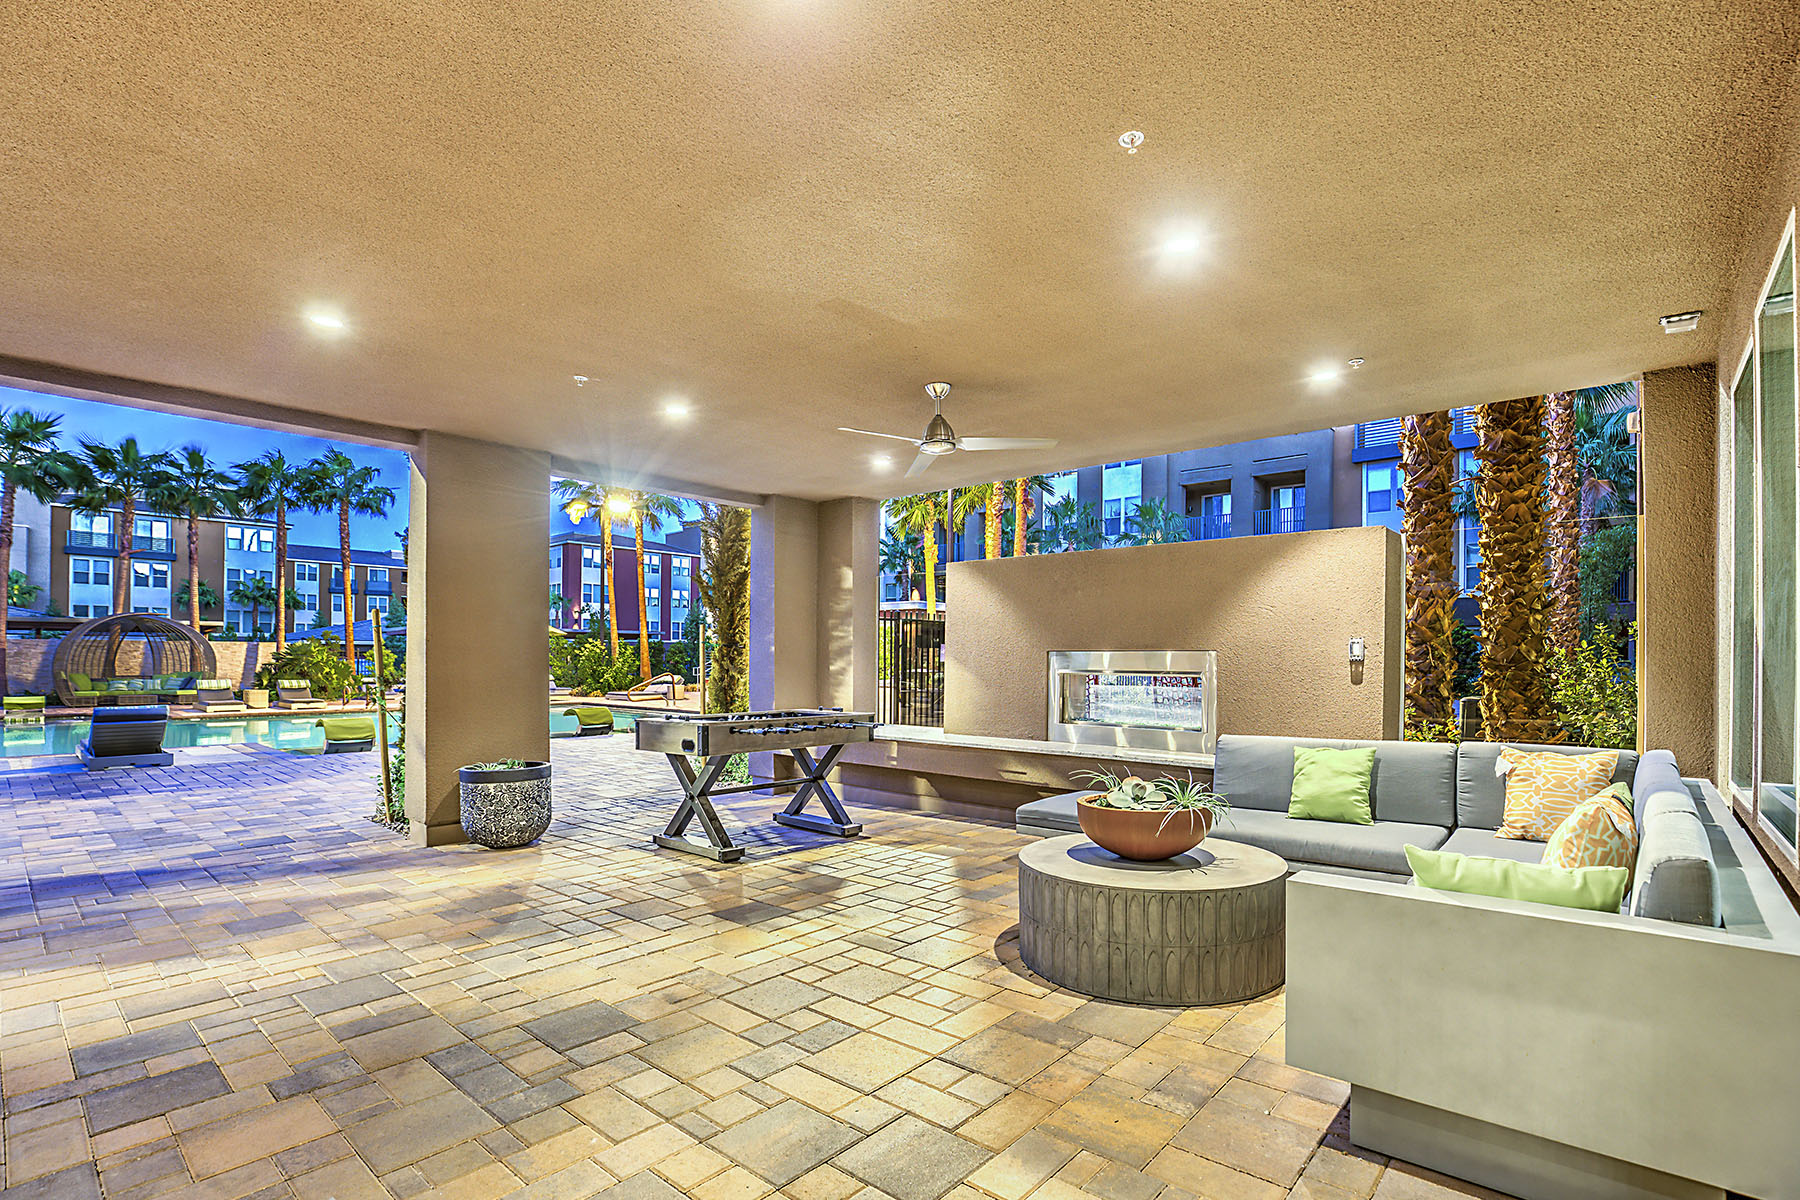 Outdoor lounge and entertainment area with ceiling fan, fireplace, couch, and foosball table. The deck leads into the resort-style pool area.